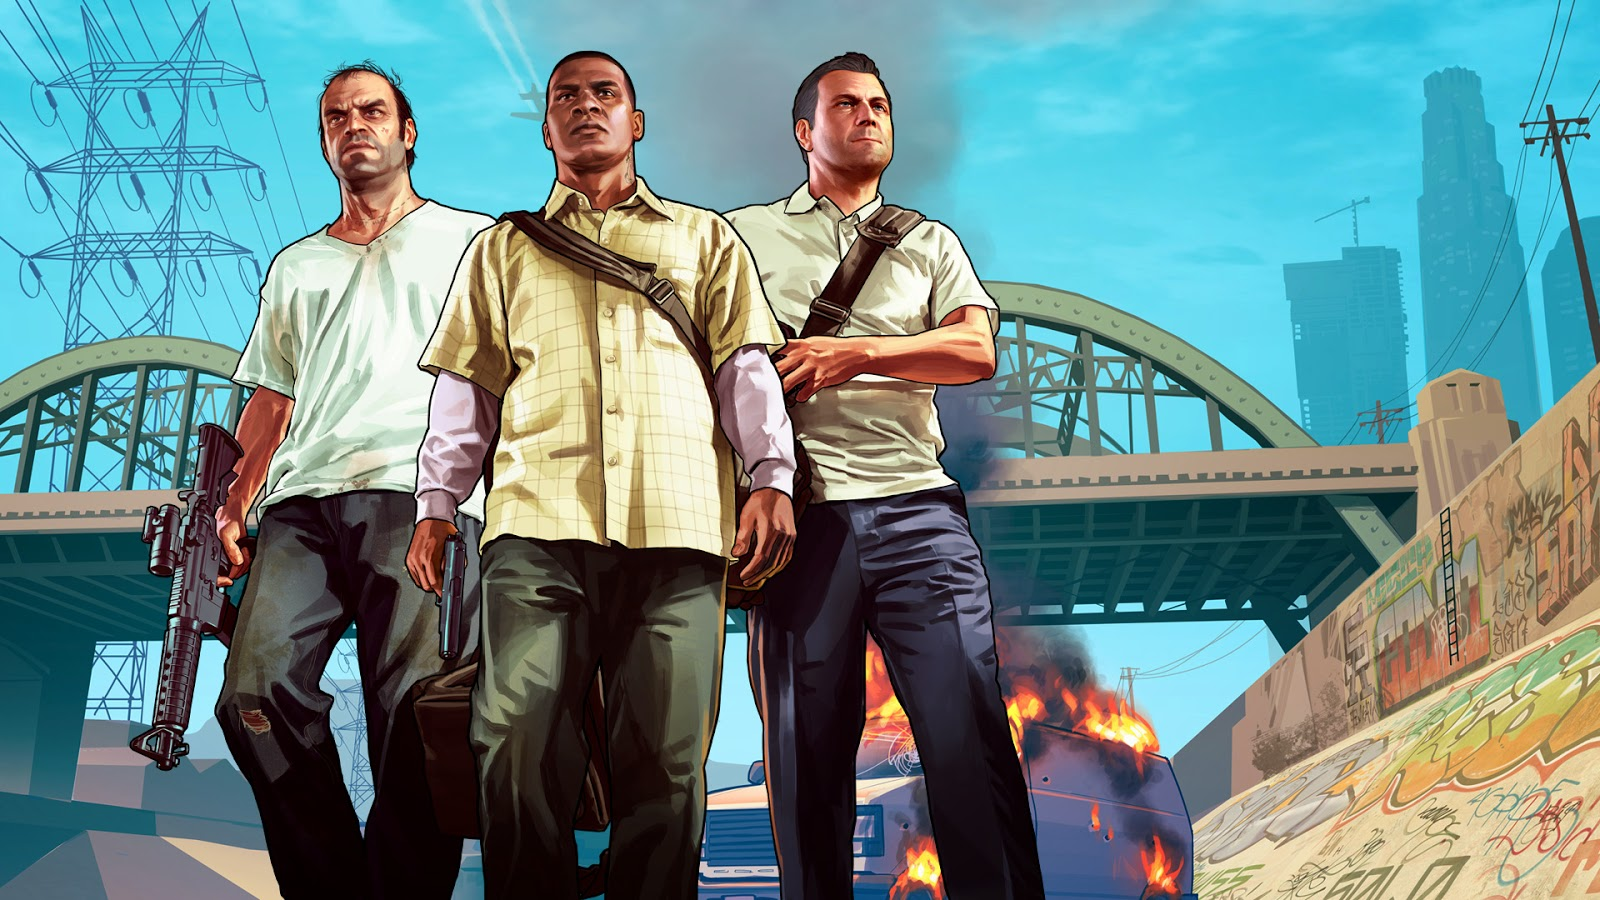 Gta 5 Hd Desktop Wallpapers and Beautiful Images and Top HD Wallpapers 1600x900